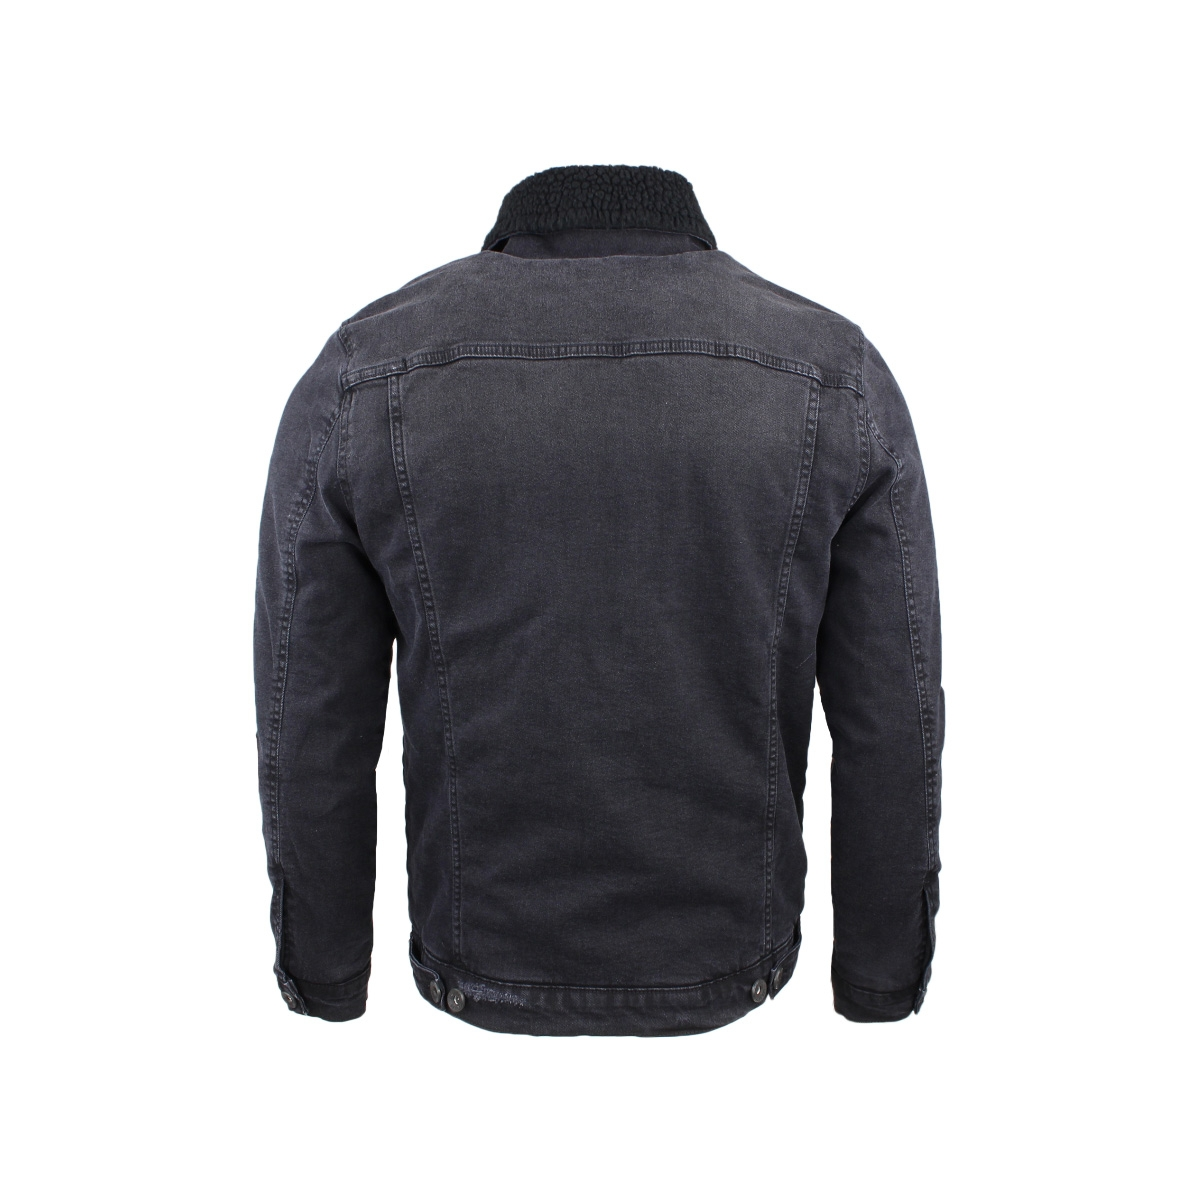 denim jack 53137 gabbiano jas black